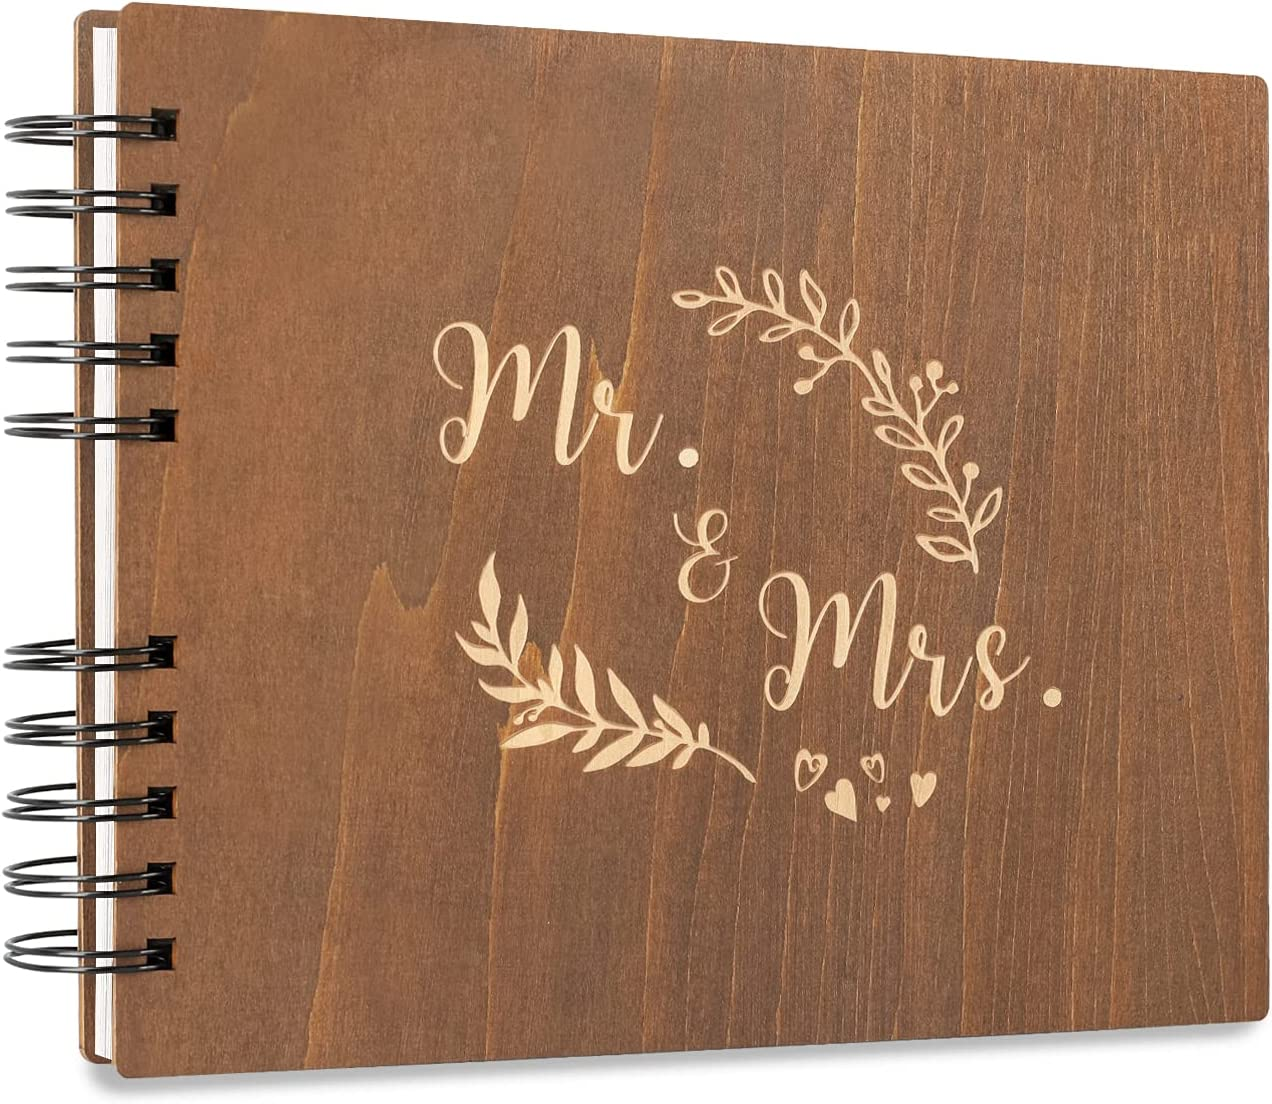 Creawoo Very popular! 11'' MrMrs Detroit Mall Wooden Guest Memory Kee Album Book